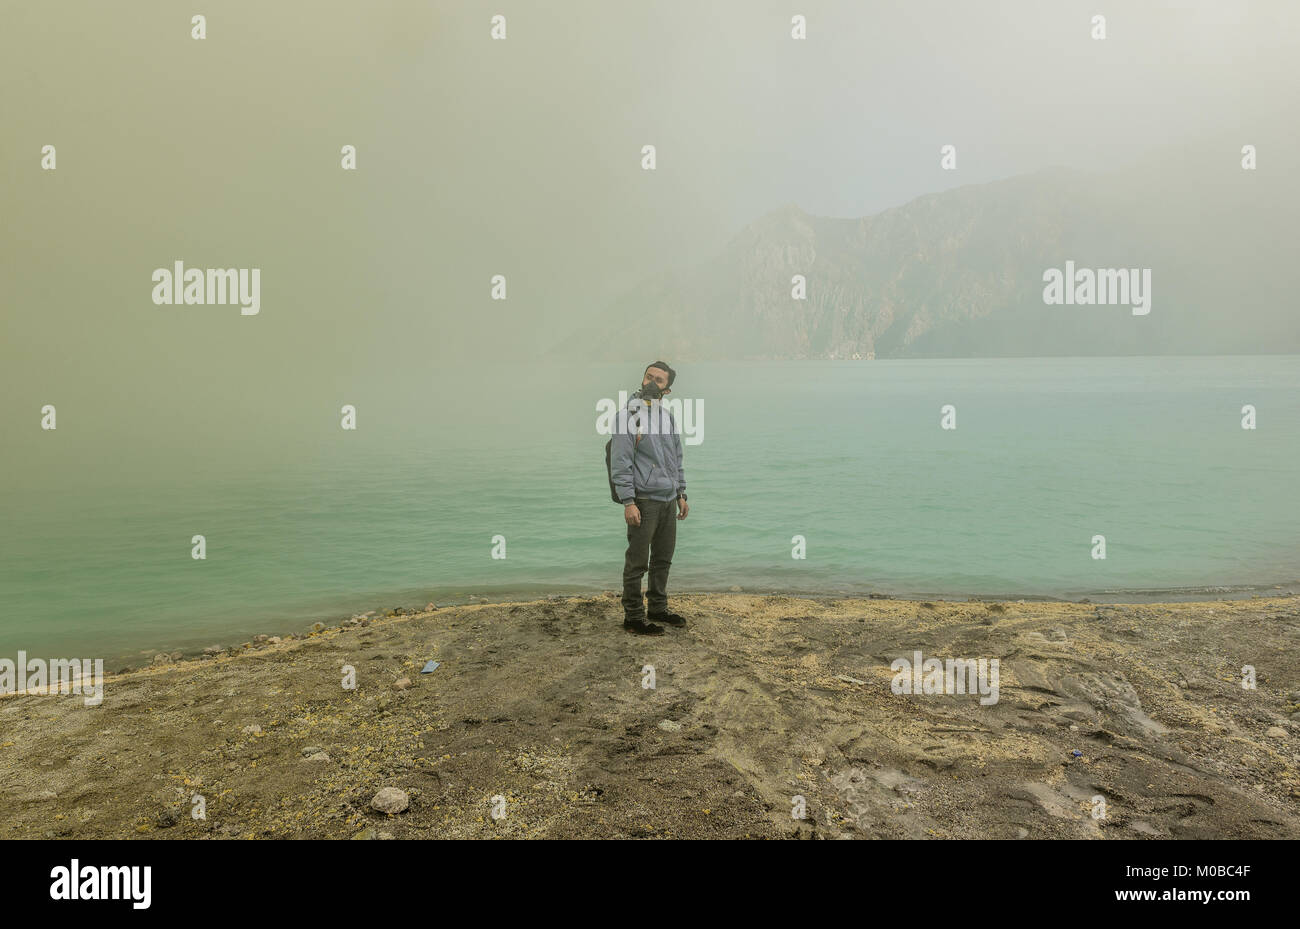 Tourist surrounded by toxic gas standing near Ijen crater lake, Indonesia - Stock Image